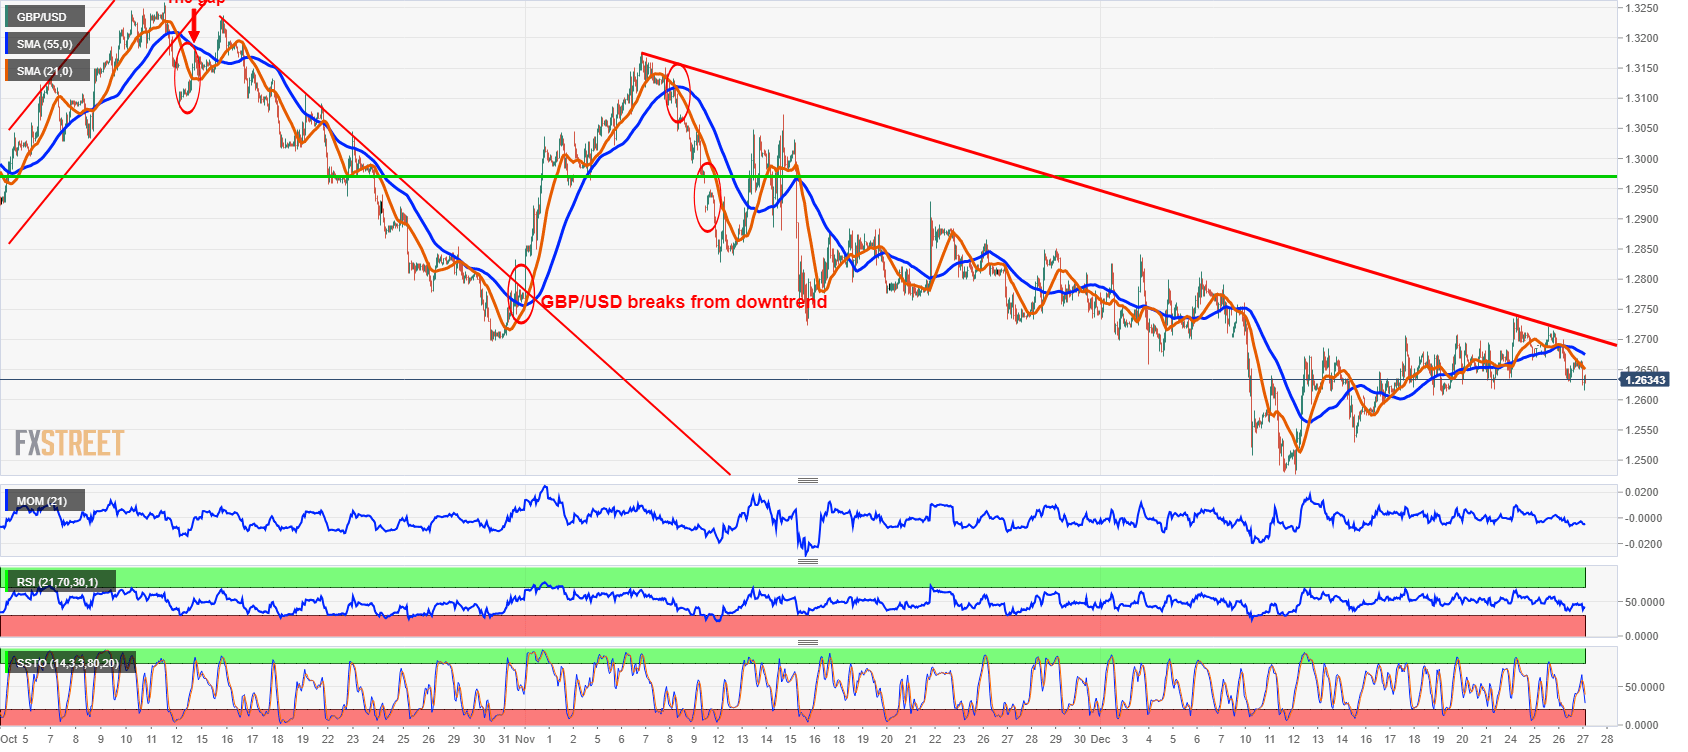 gbpusd_1-hour_chart-636815098272873103.png